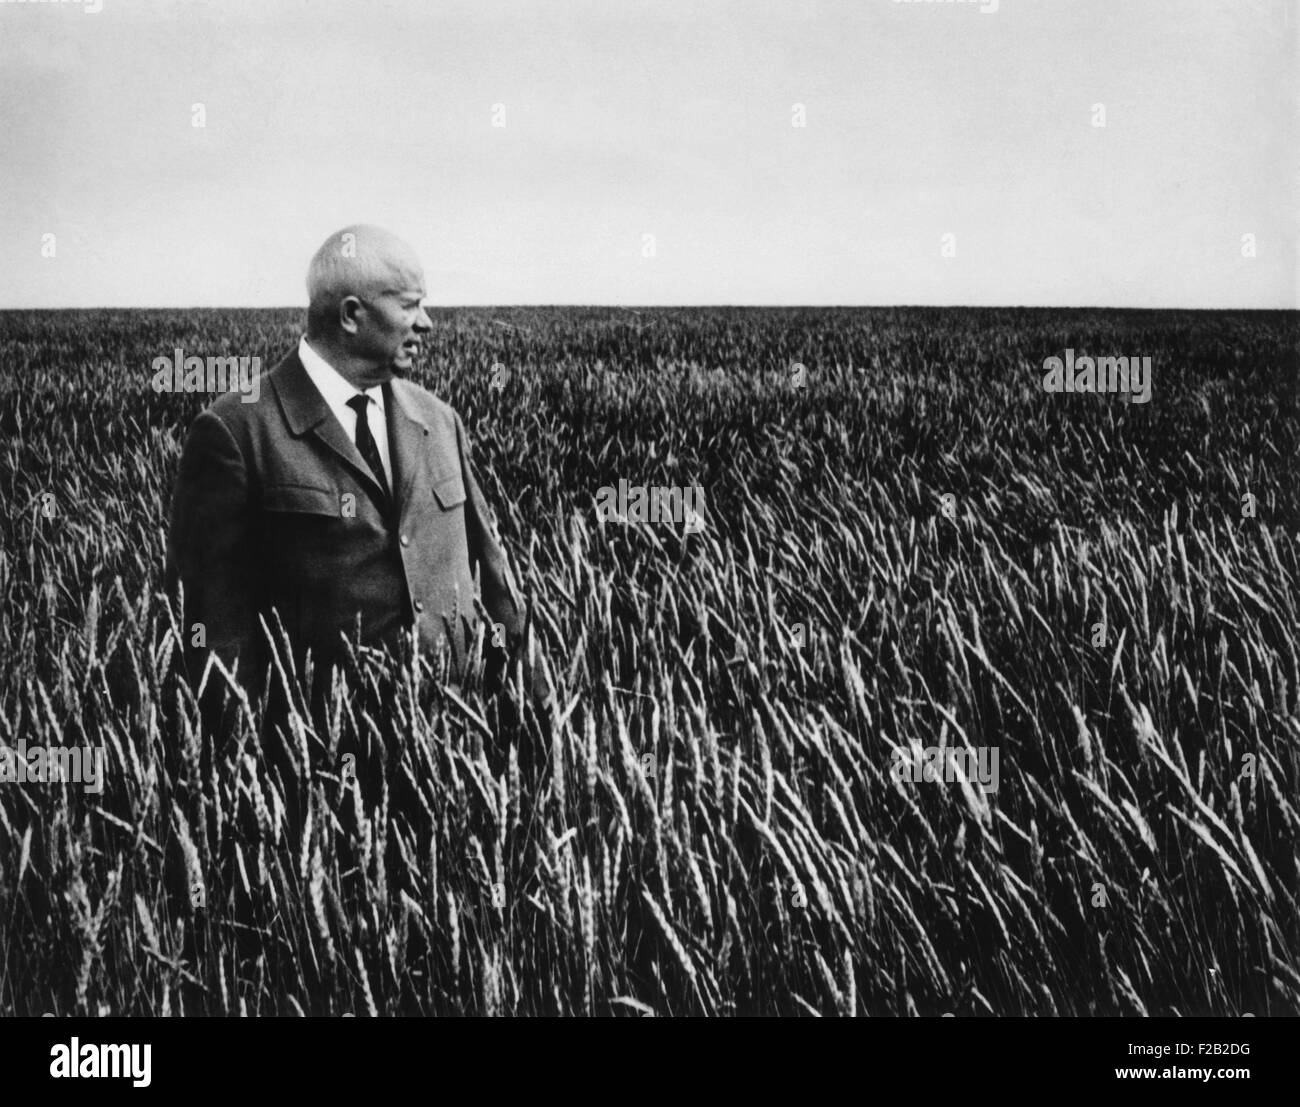 Soviet Premier Nikita Khrushchev stands in a sea of waving wheat in Kazakhstan. Sept. 1964. A month later the Presidium, - Stock Image